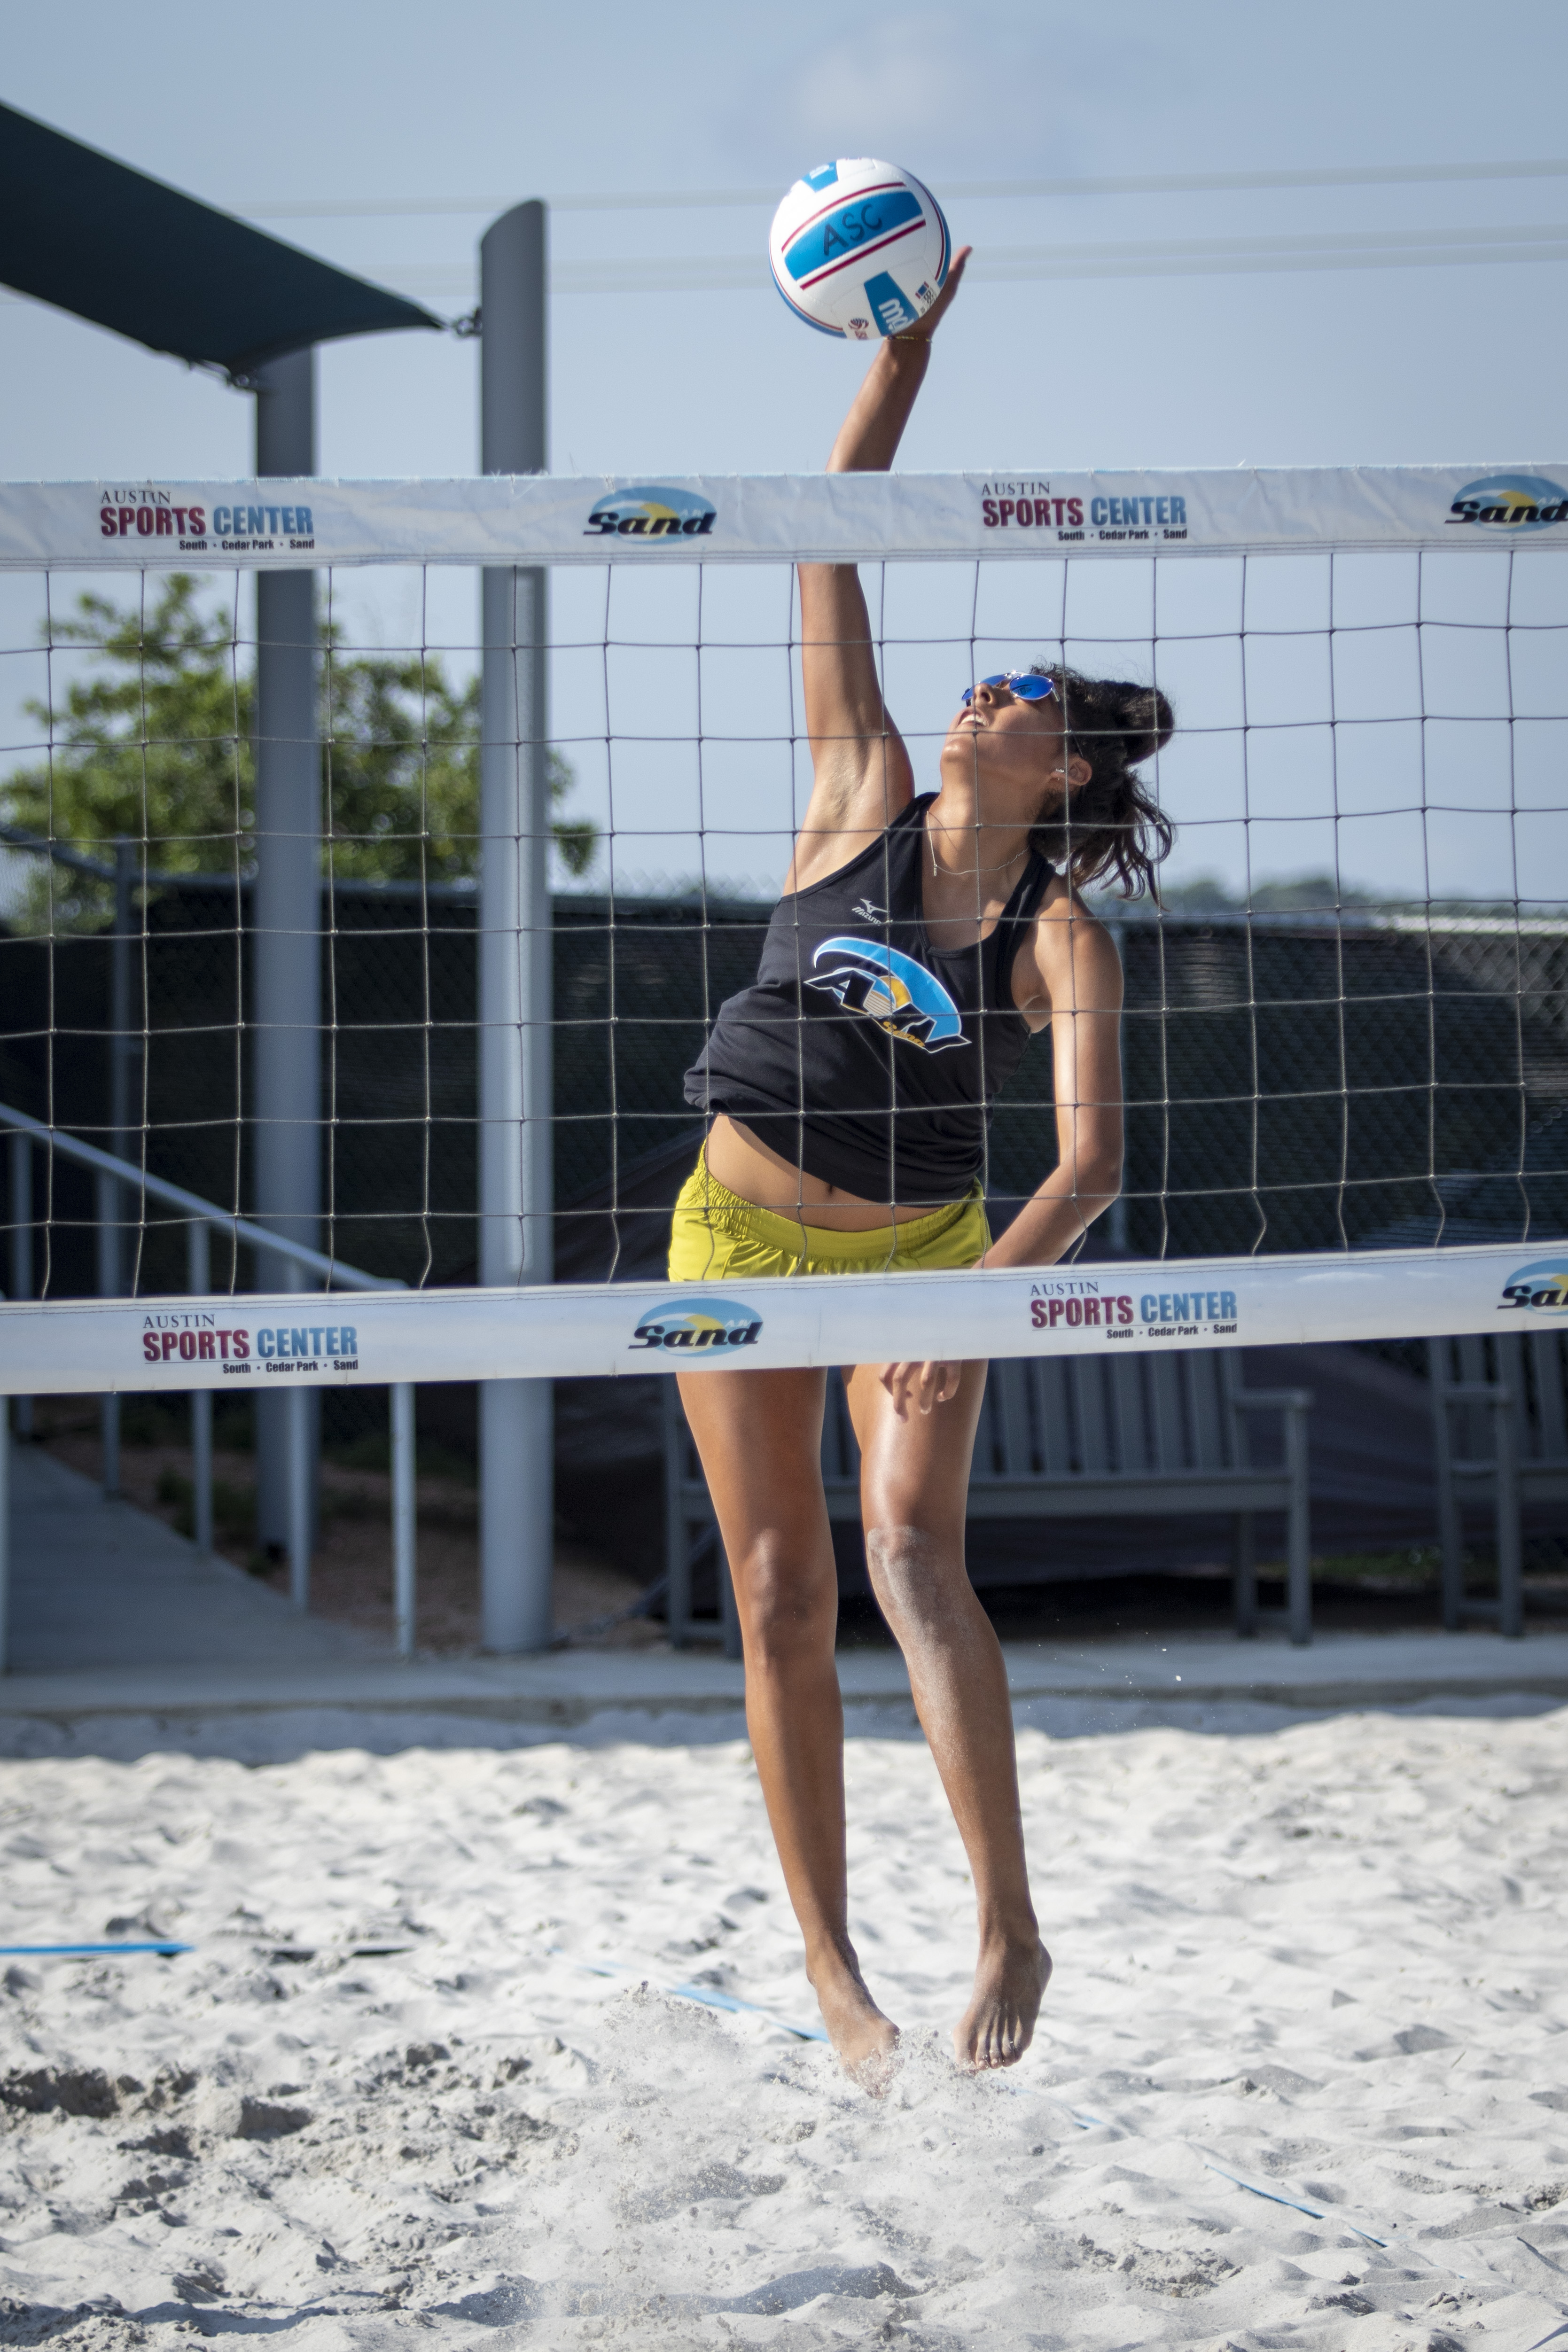 girl playing sand volleyball